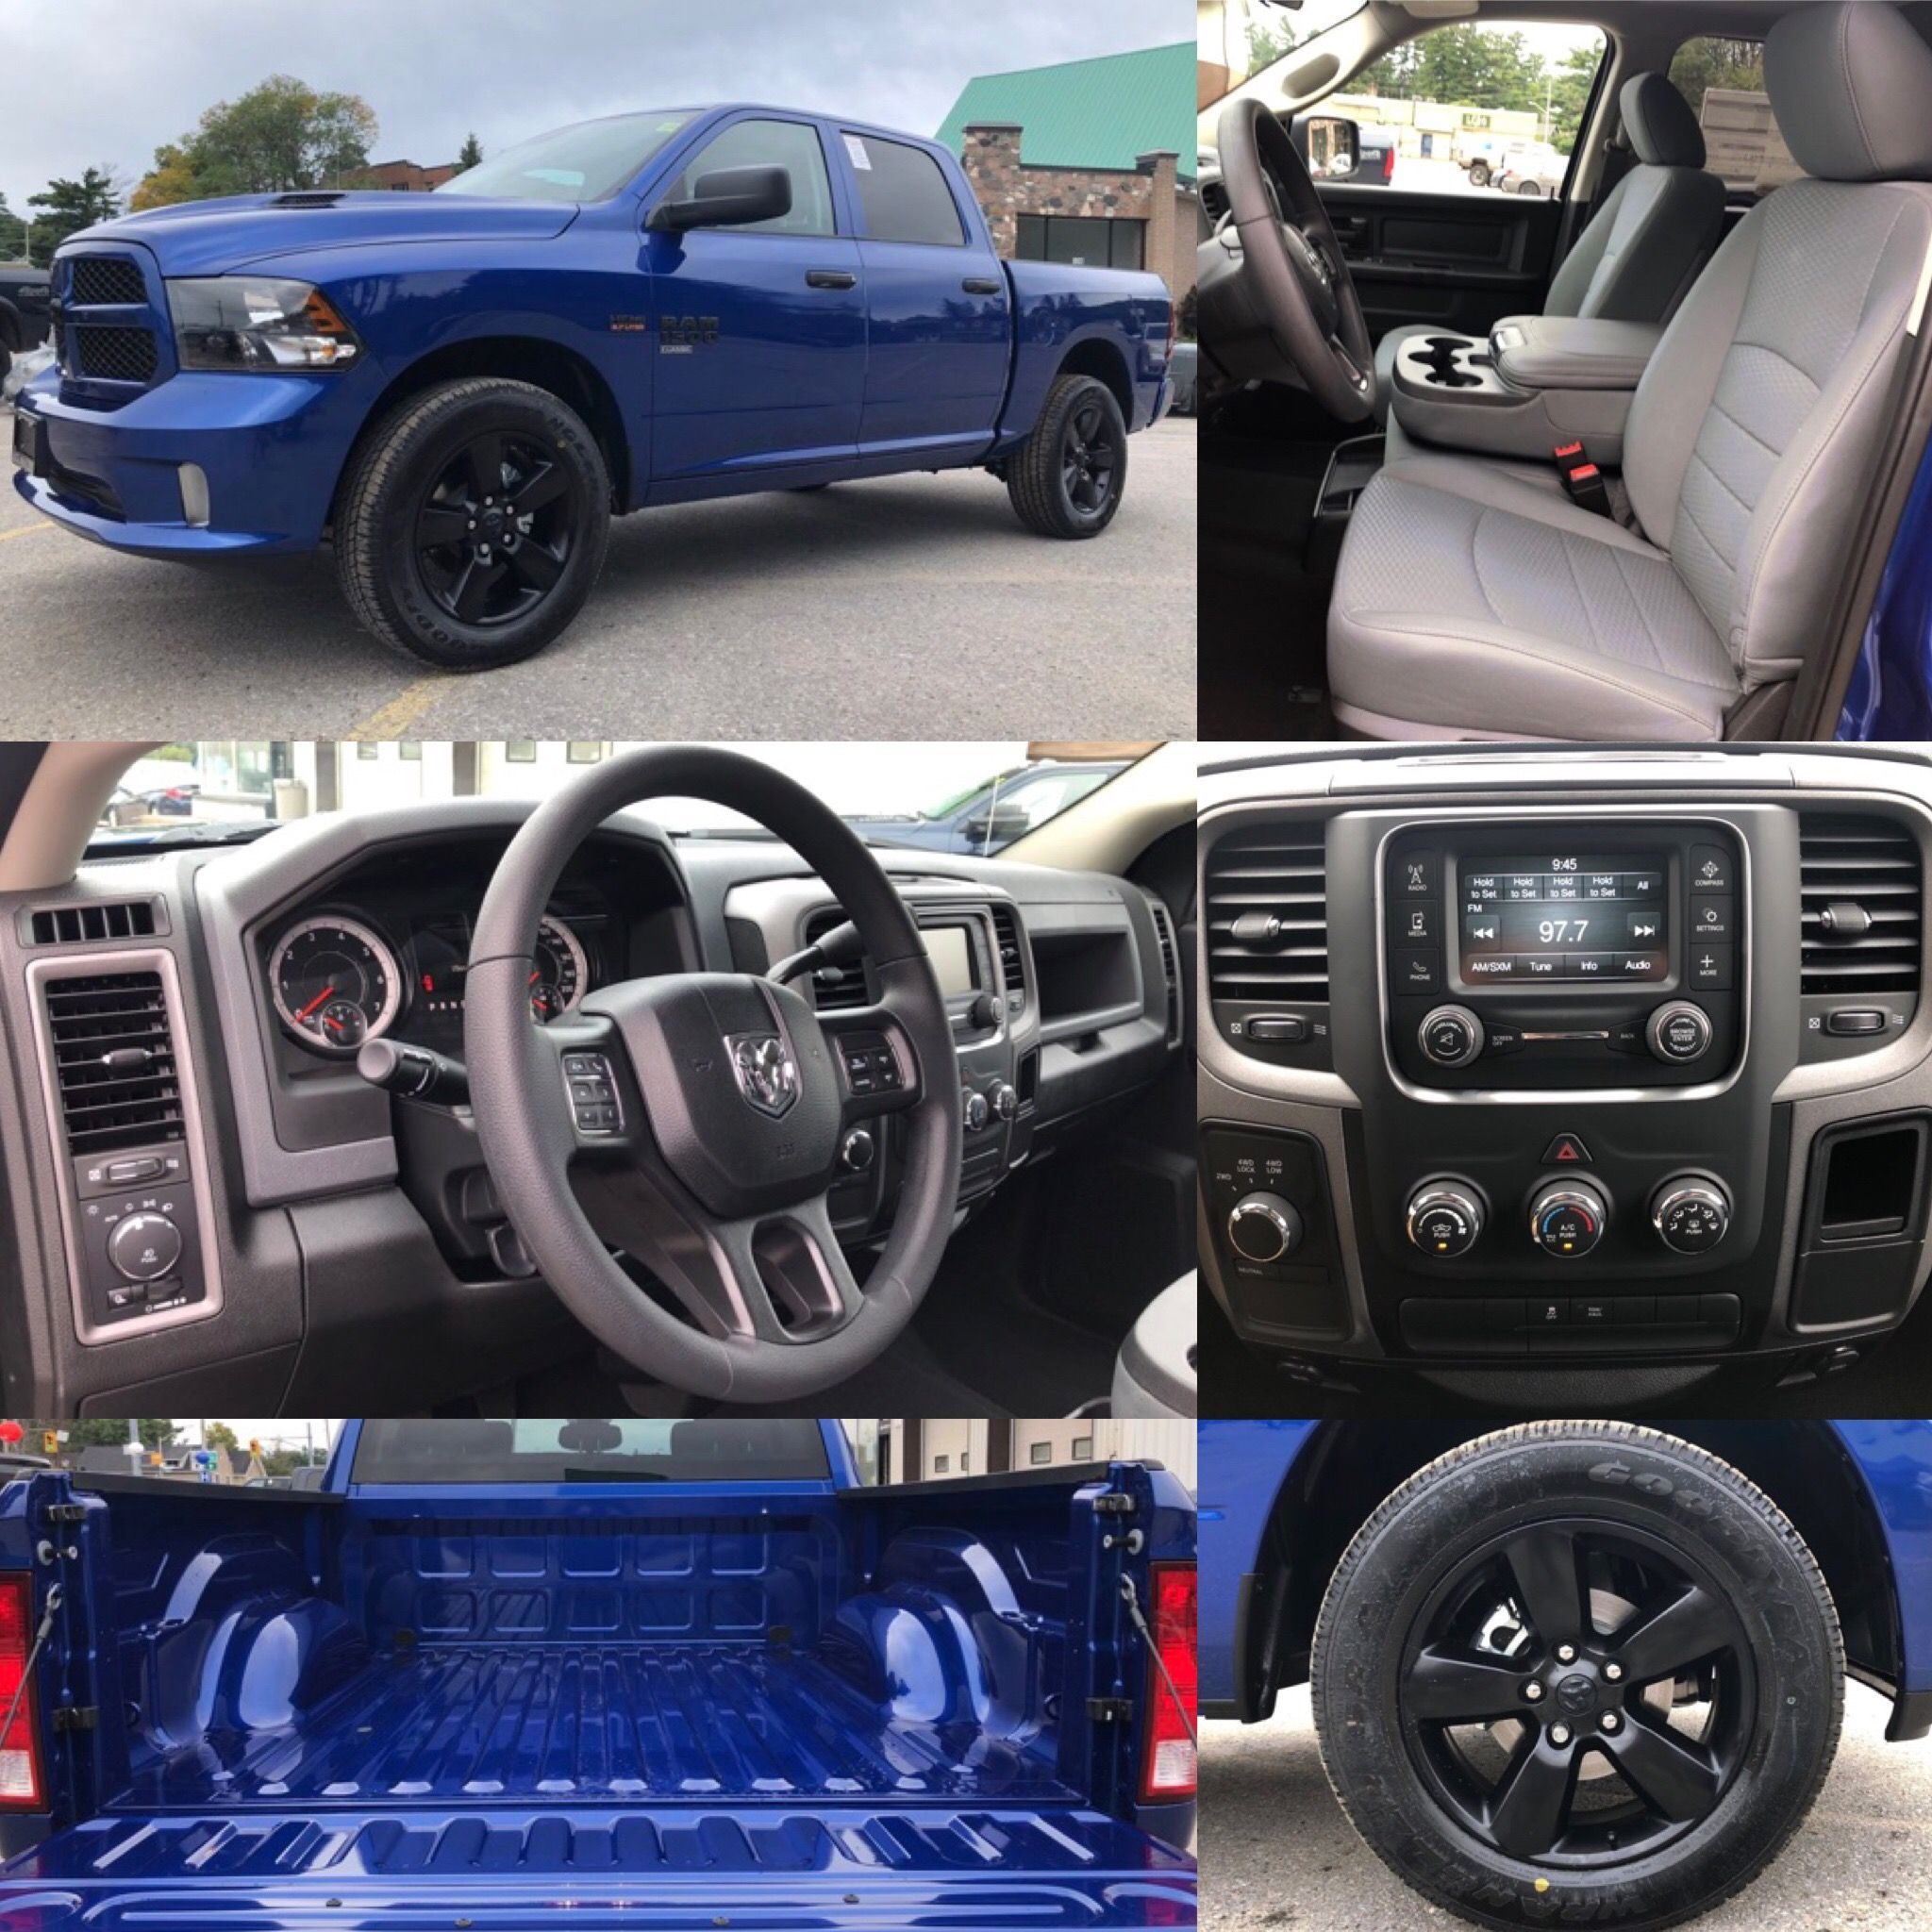 2019 Blue Streak Ram 1500 Classic Express Blackout 4x4 Sport Hood Bluetooth Backup Cam Hemi Crew Cab Remote Entr Ram 1500 Dodge Trucks Ram Dodge Trucks